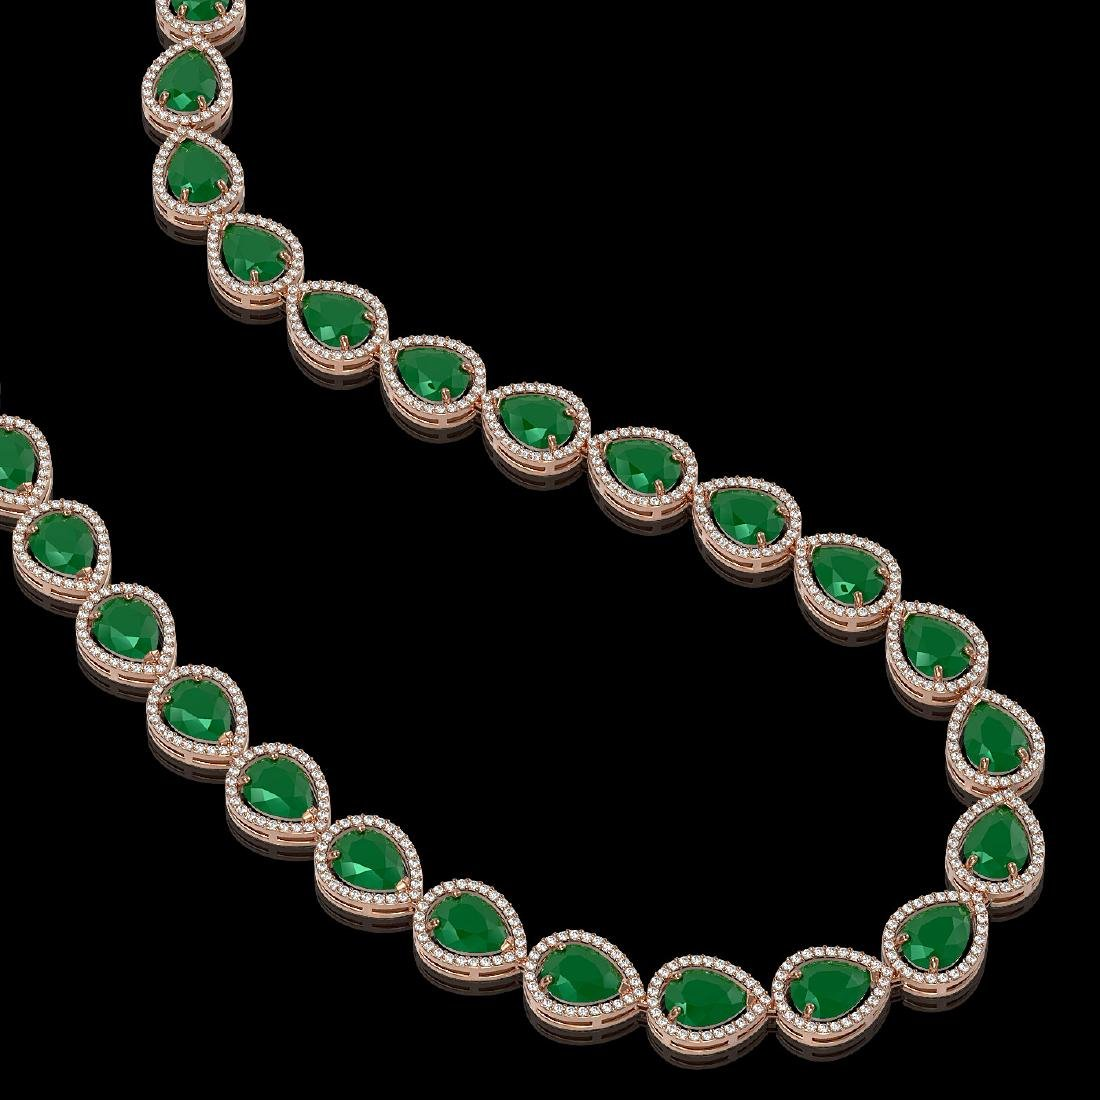 64.01 CTW Emerald & Diamond Halo Necklace 10K Rose Gold - 2